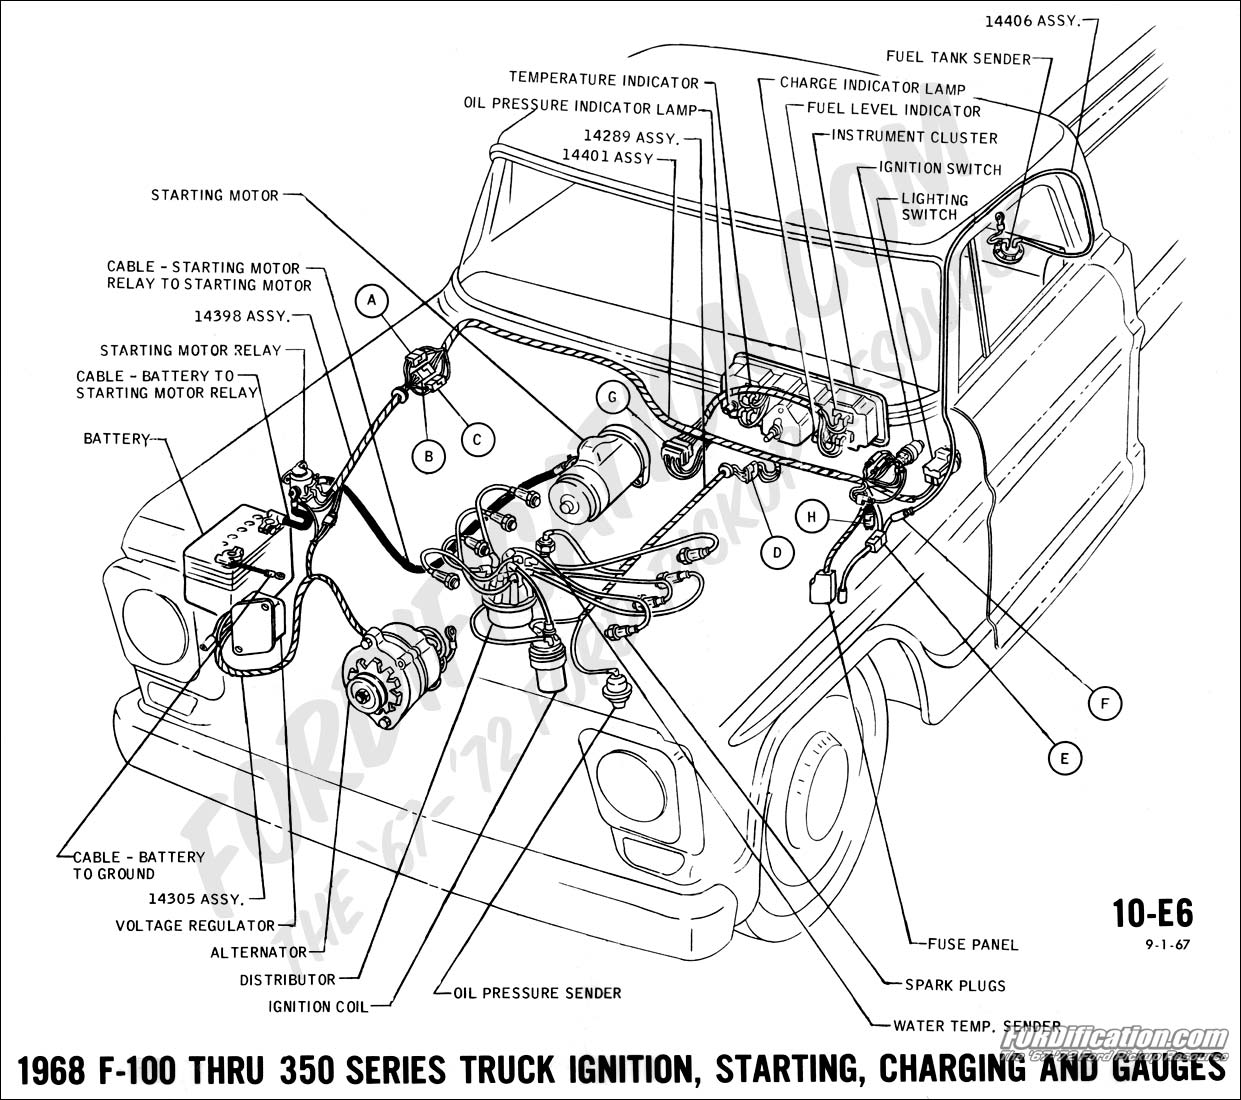 1968 f-100 thru f-350 ignition, starting, charging and gauges   ford